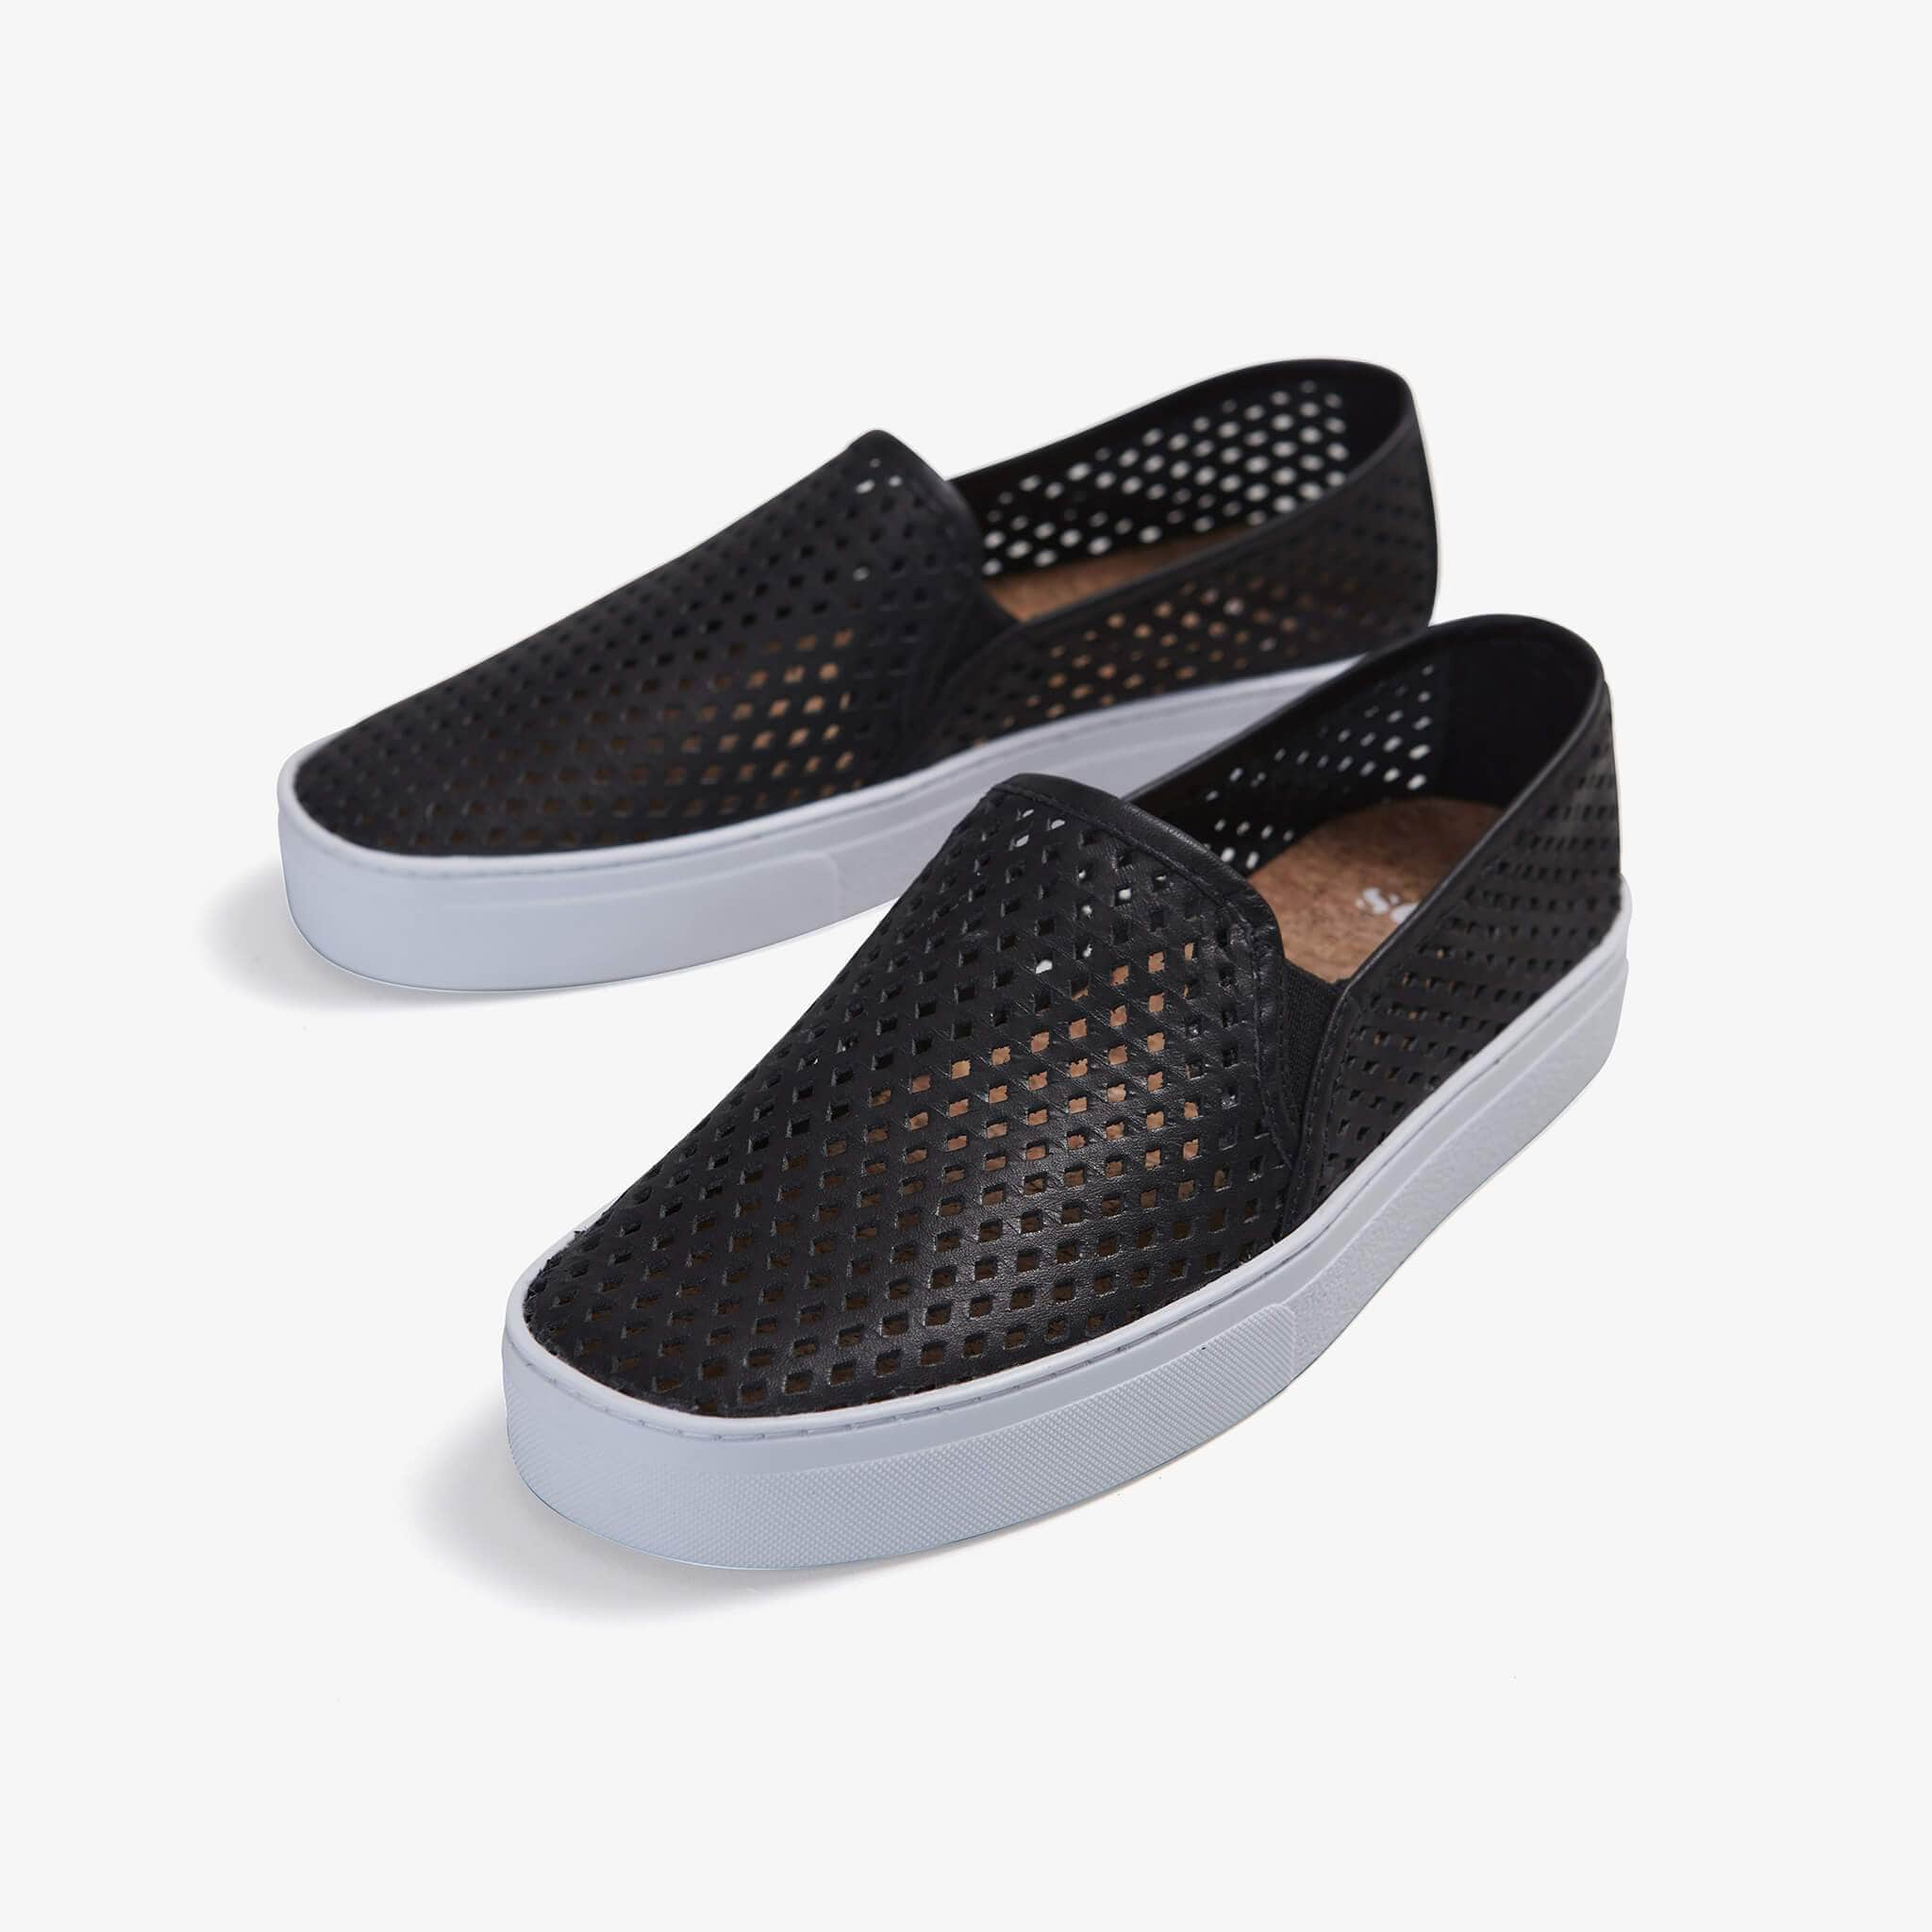 Jibs Classic Jet Black Slip On Sneaker-Shoe